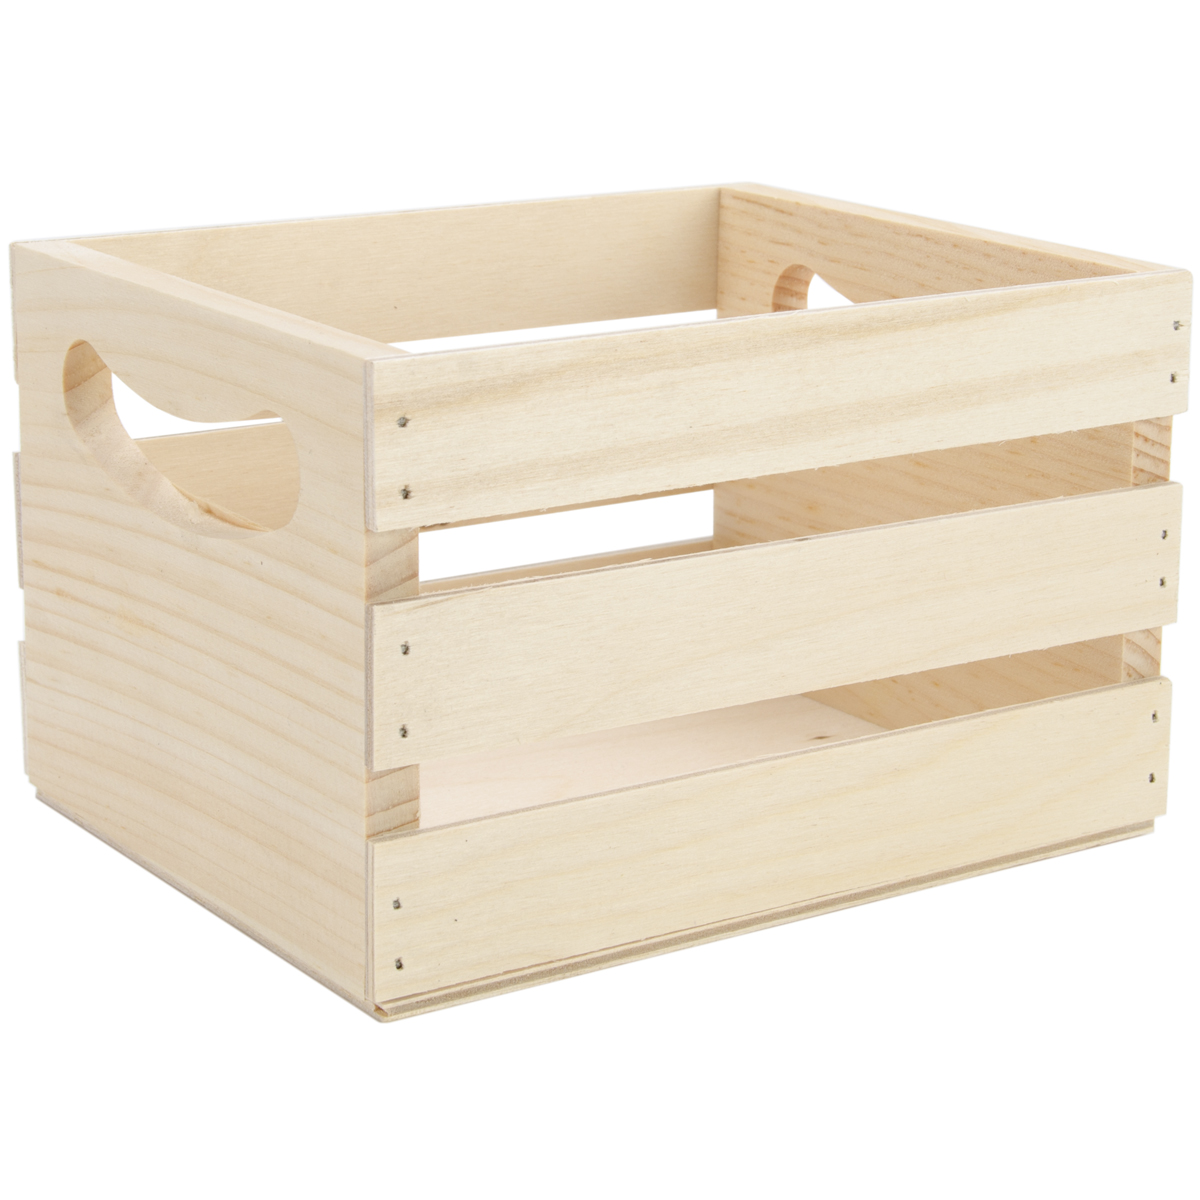 Mini Wooden Crate Whandles 65x53x425